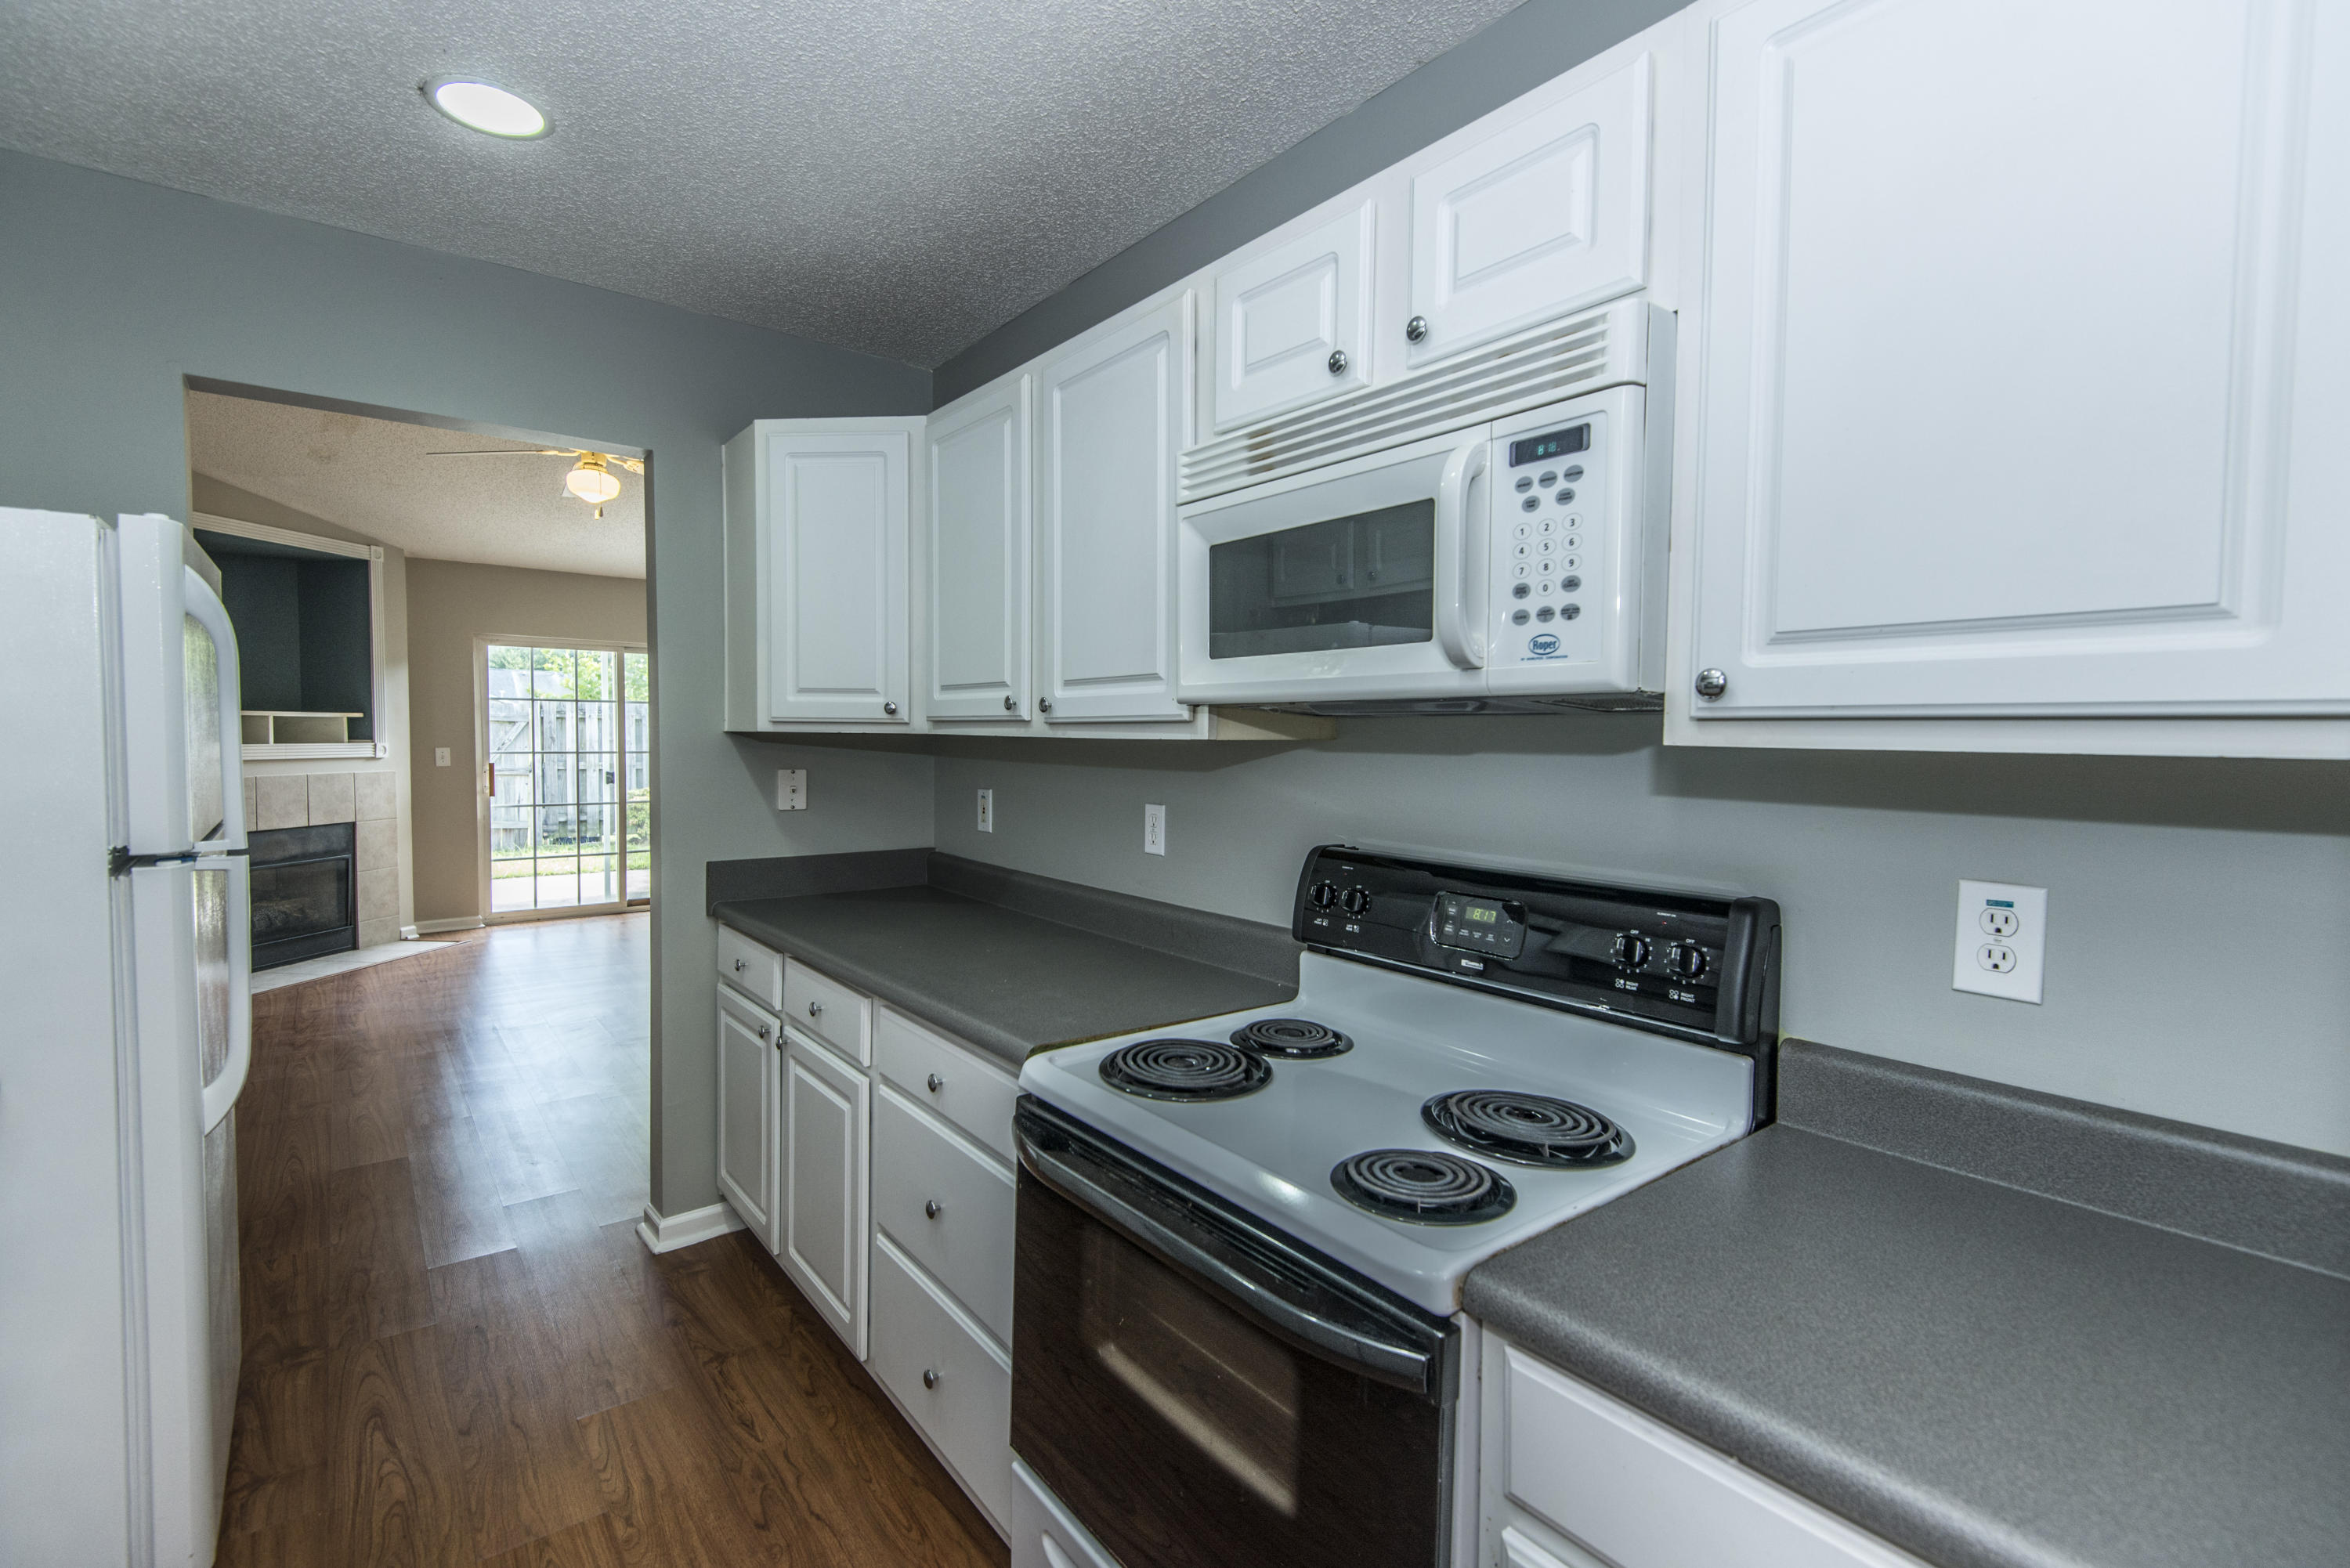 Meridian Place Homes For Sale - 1274 Apex, Charleston, SC - 22